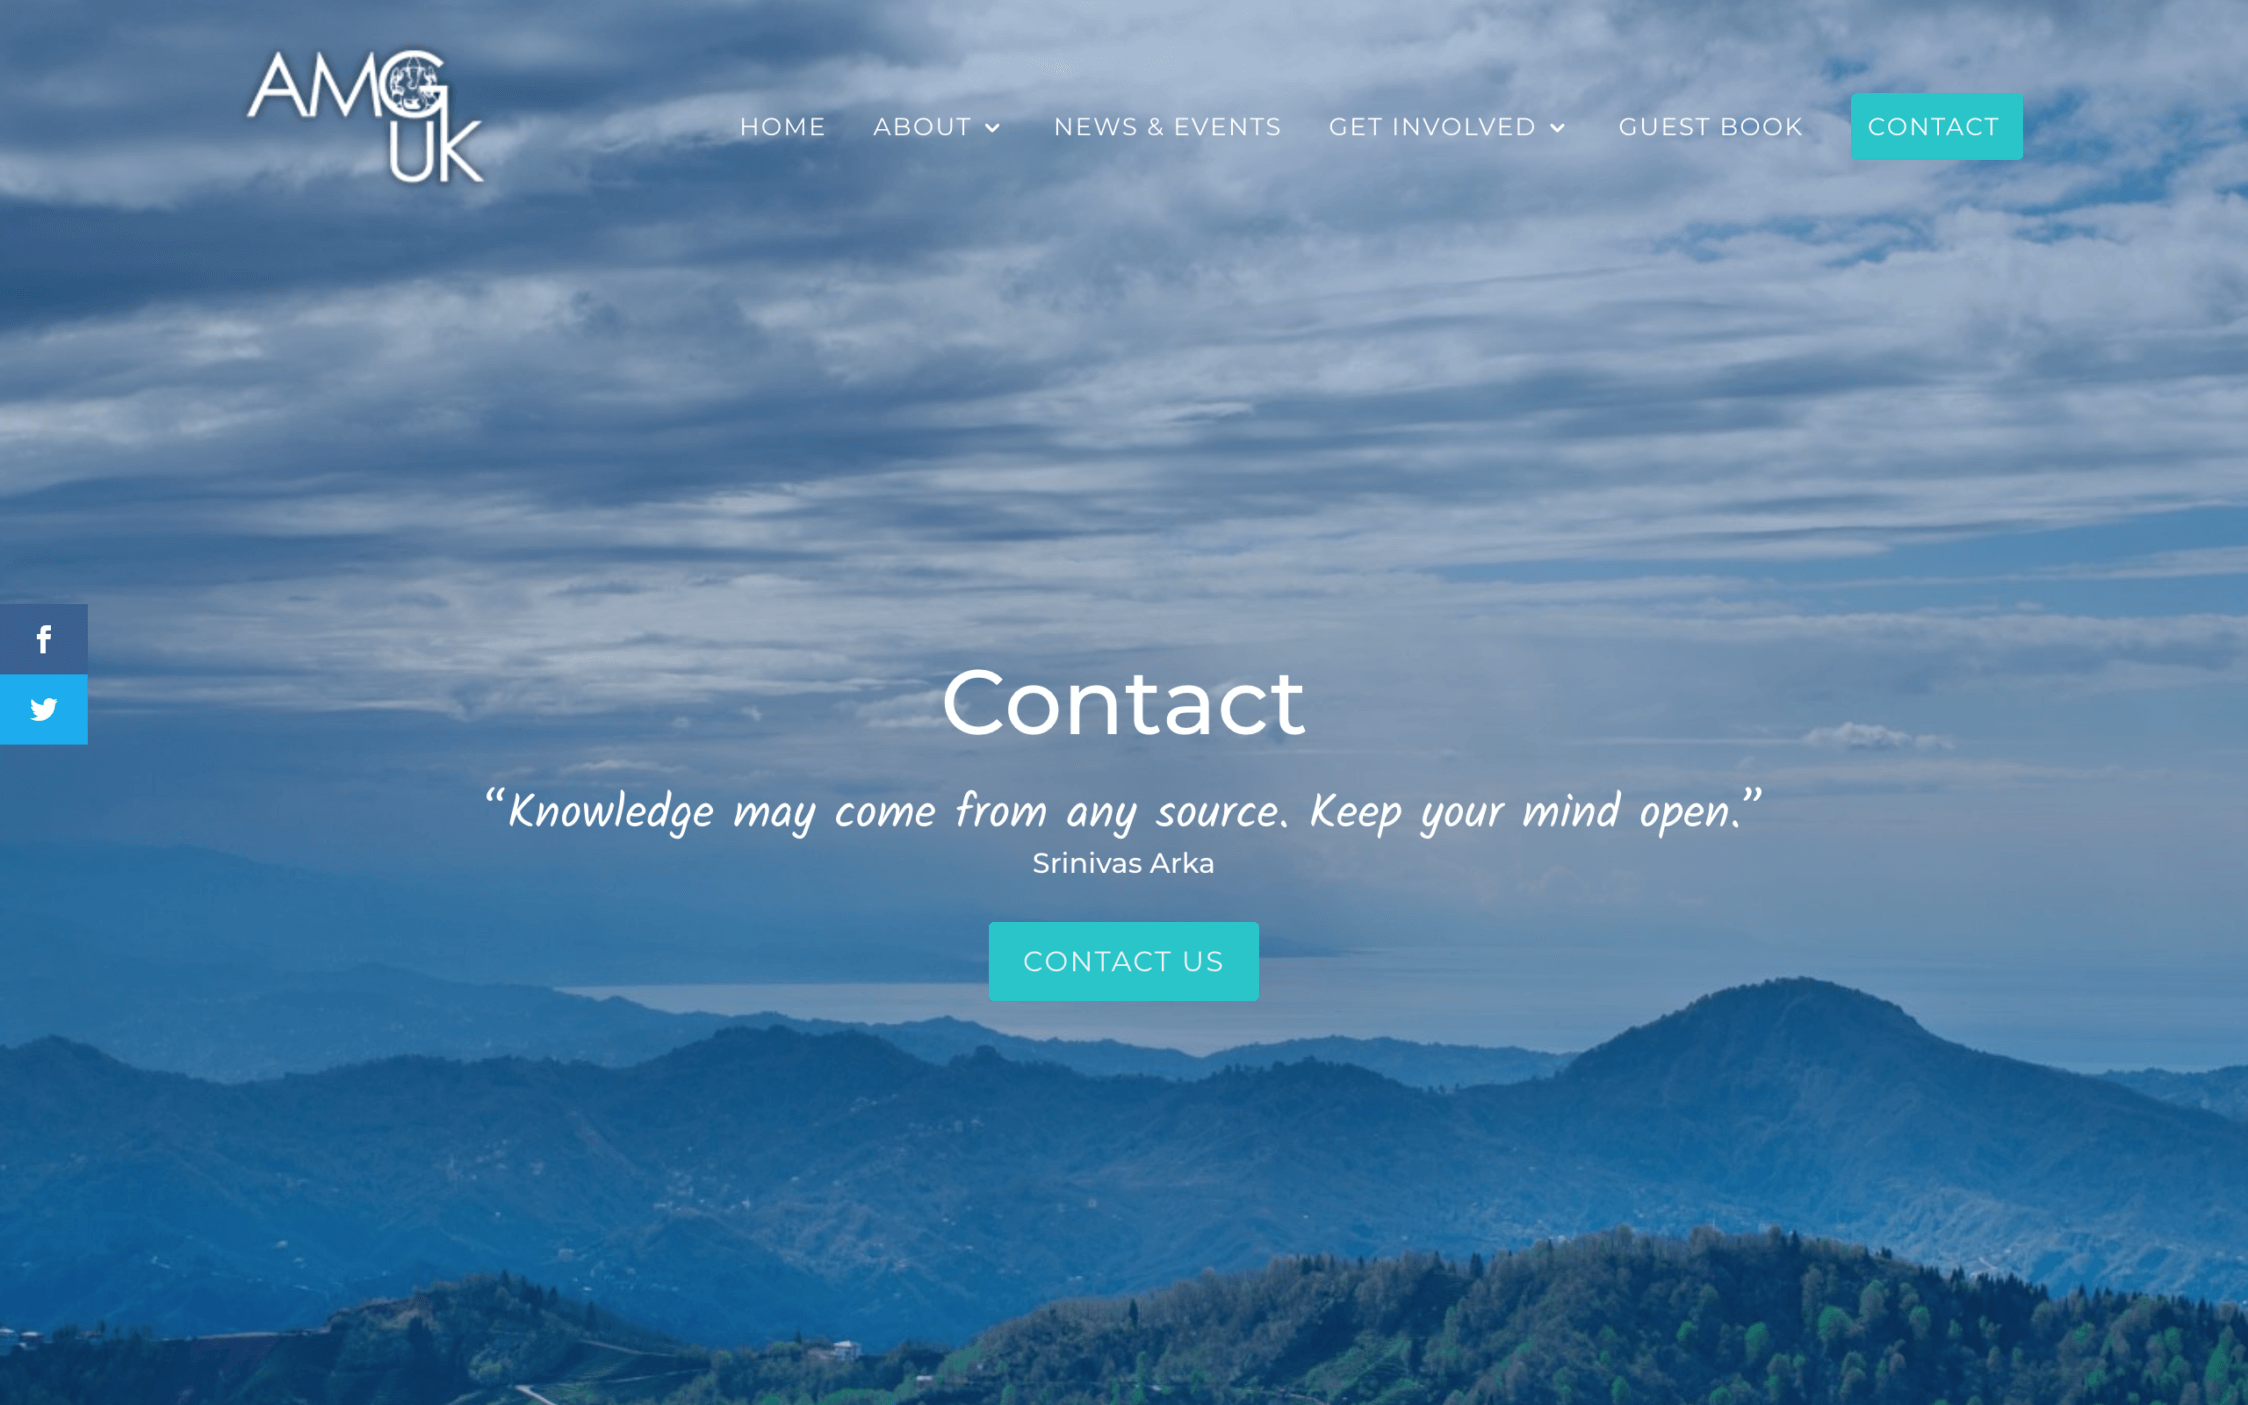 Screen Shot 2019 03 20 at 13.17.26 2 - Website design for charity organisation